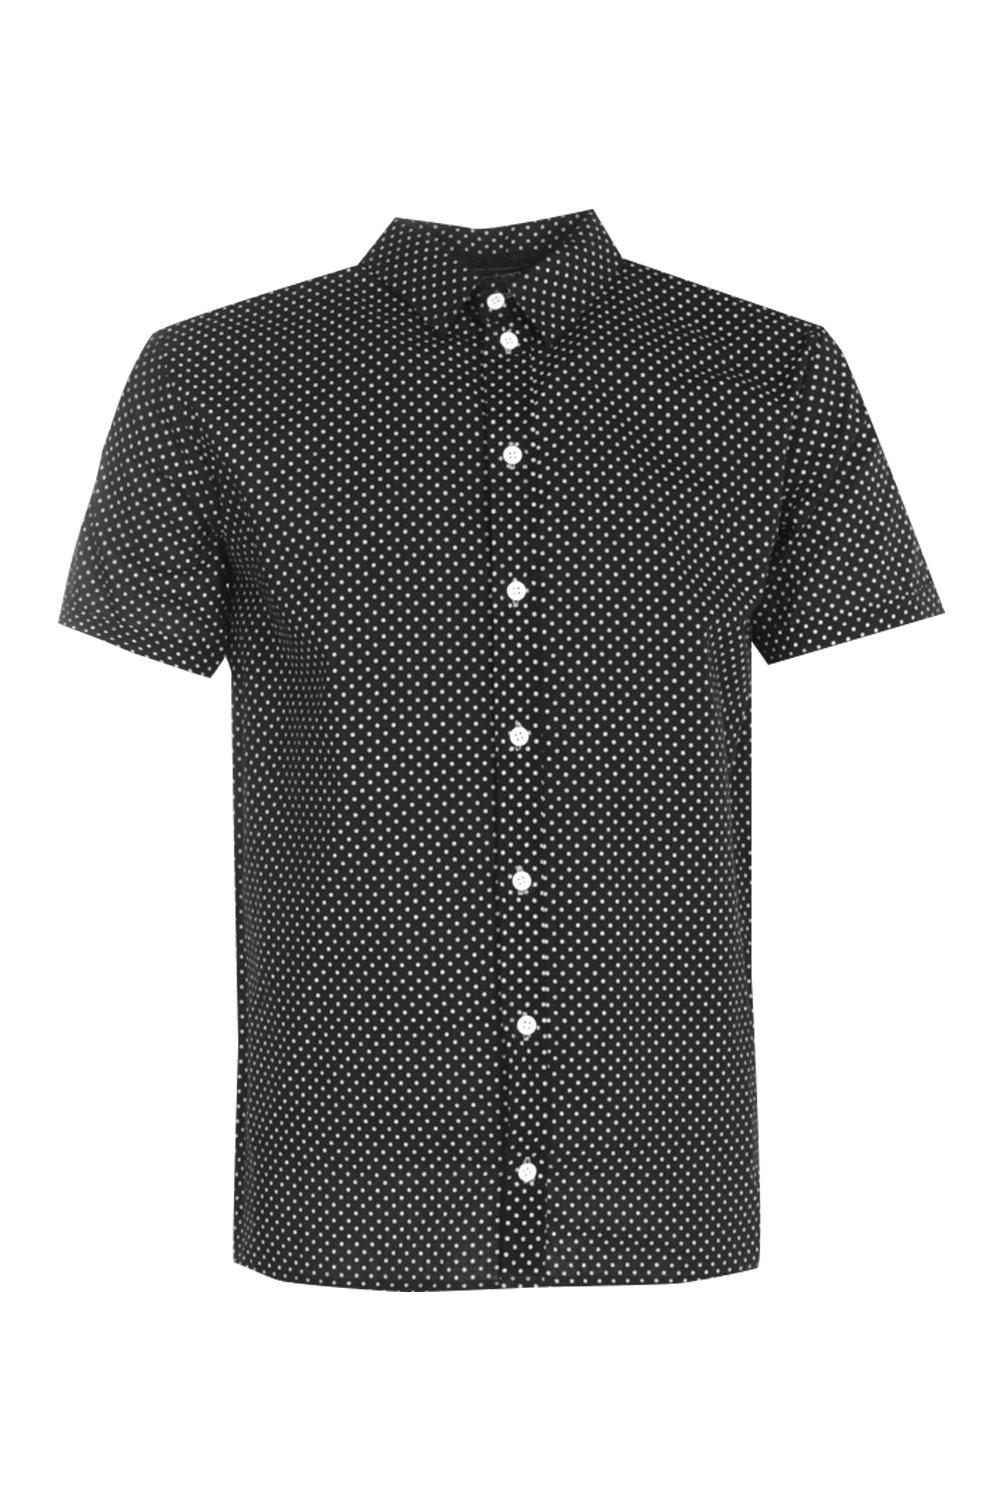 Boohoo mens polka dot print short sleeve shirt ebay for Mens polka dot shirt short sleeve